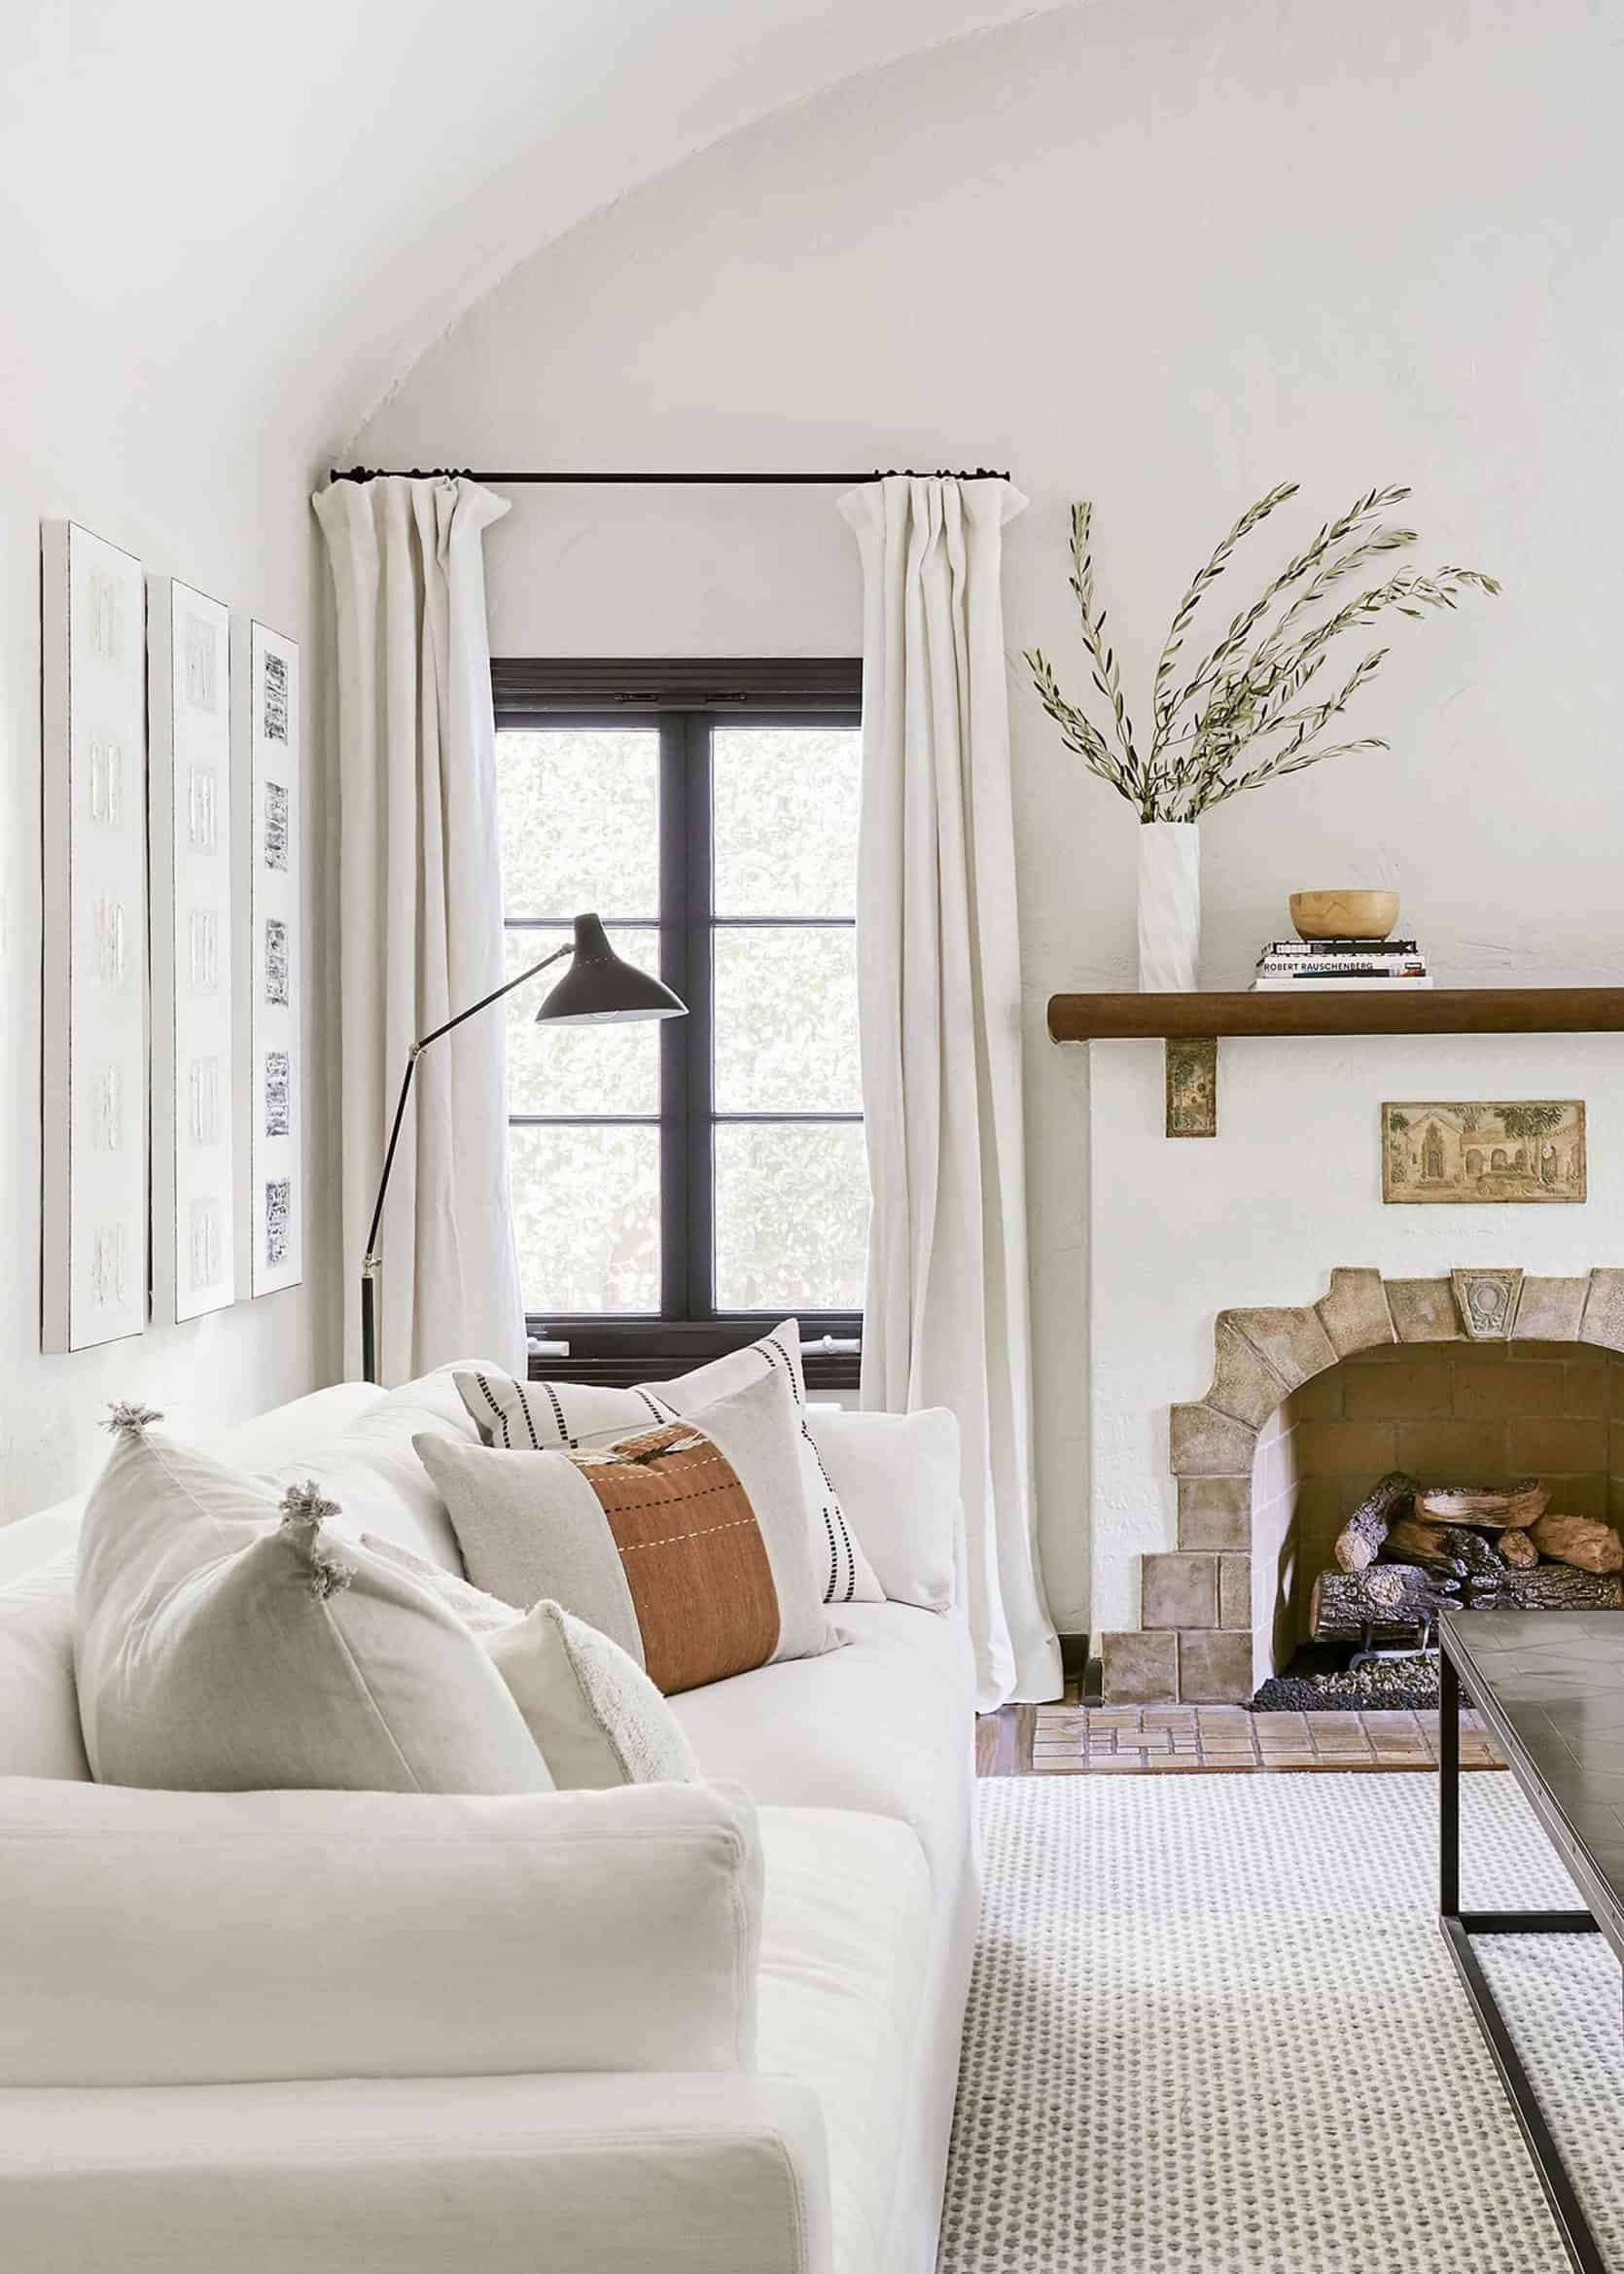 7 Key Things To Remember When Decorating With Neutrals